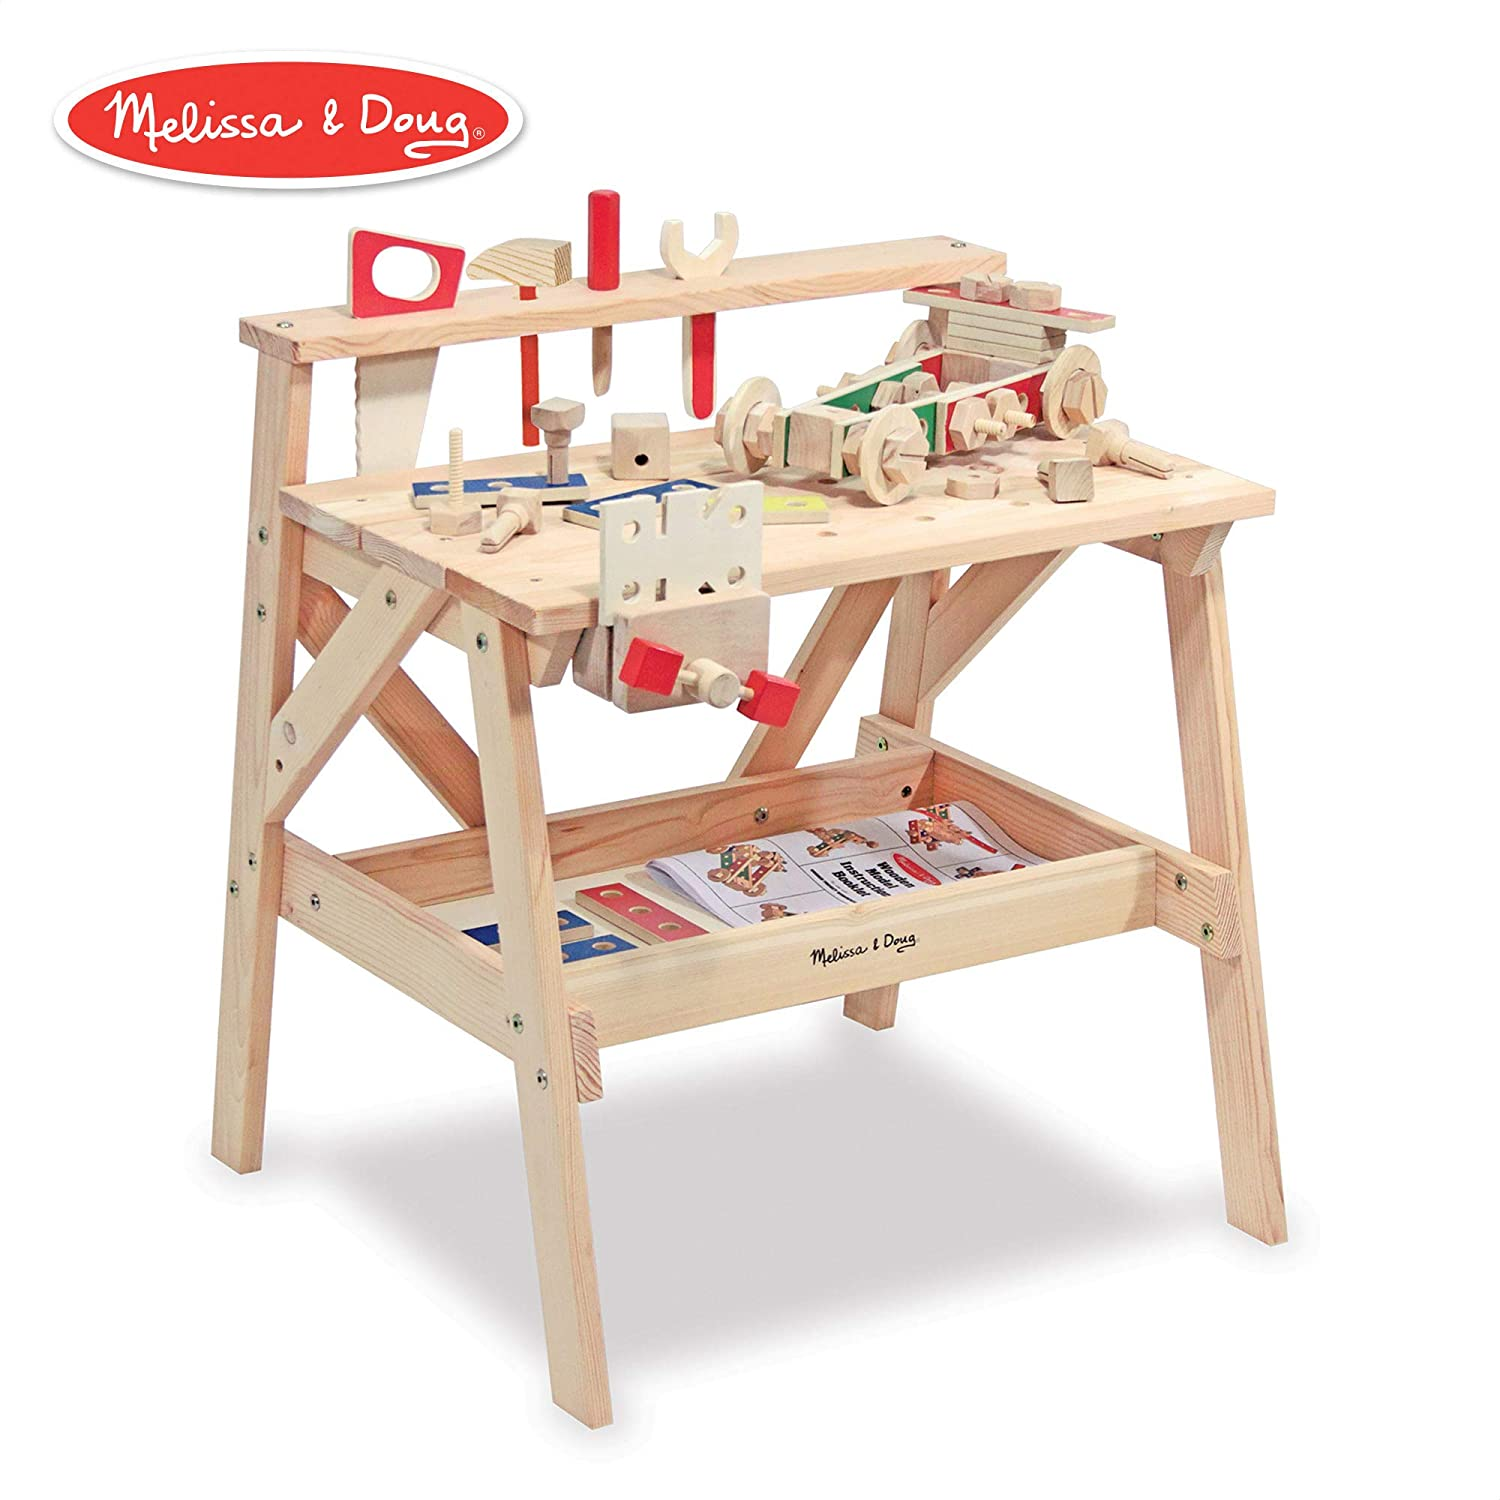 Top 9 Best Kids Toy Tool Bench Reviews in 2021 14